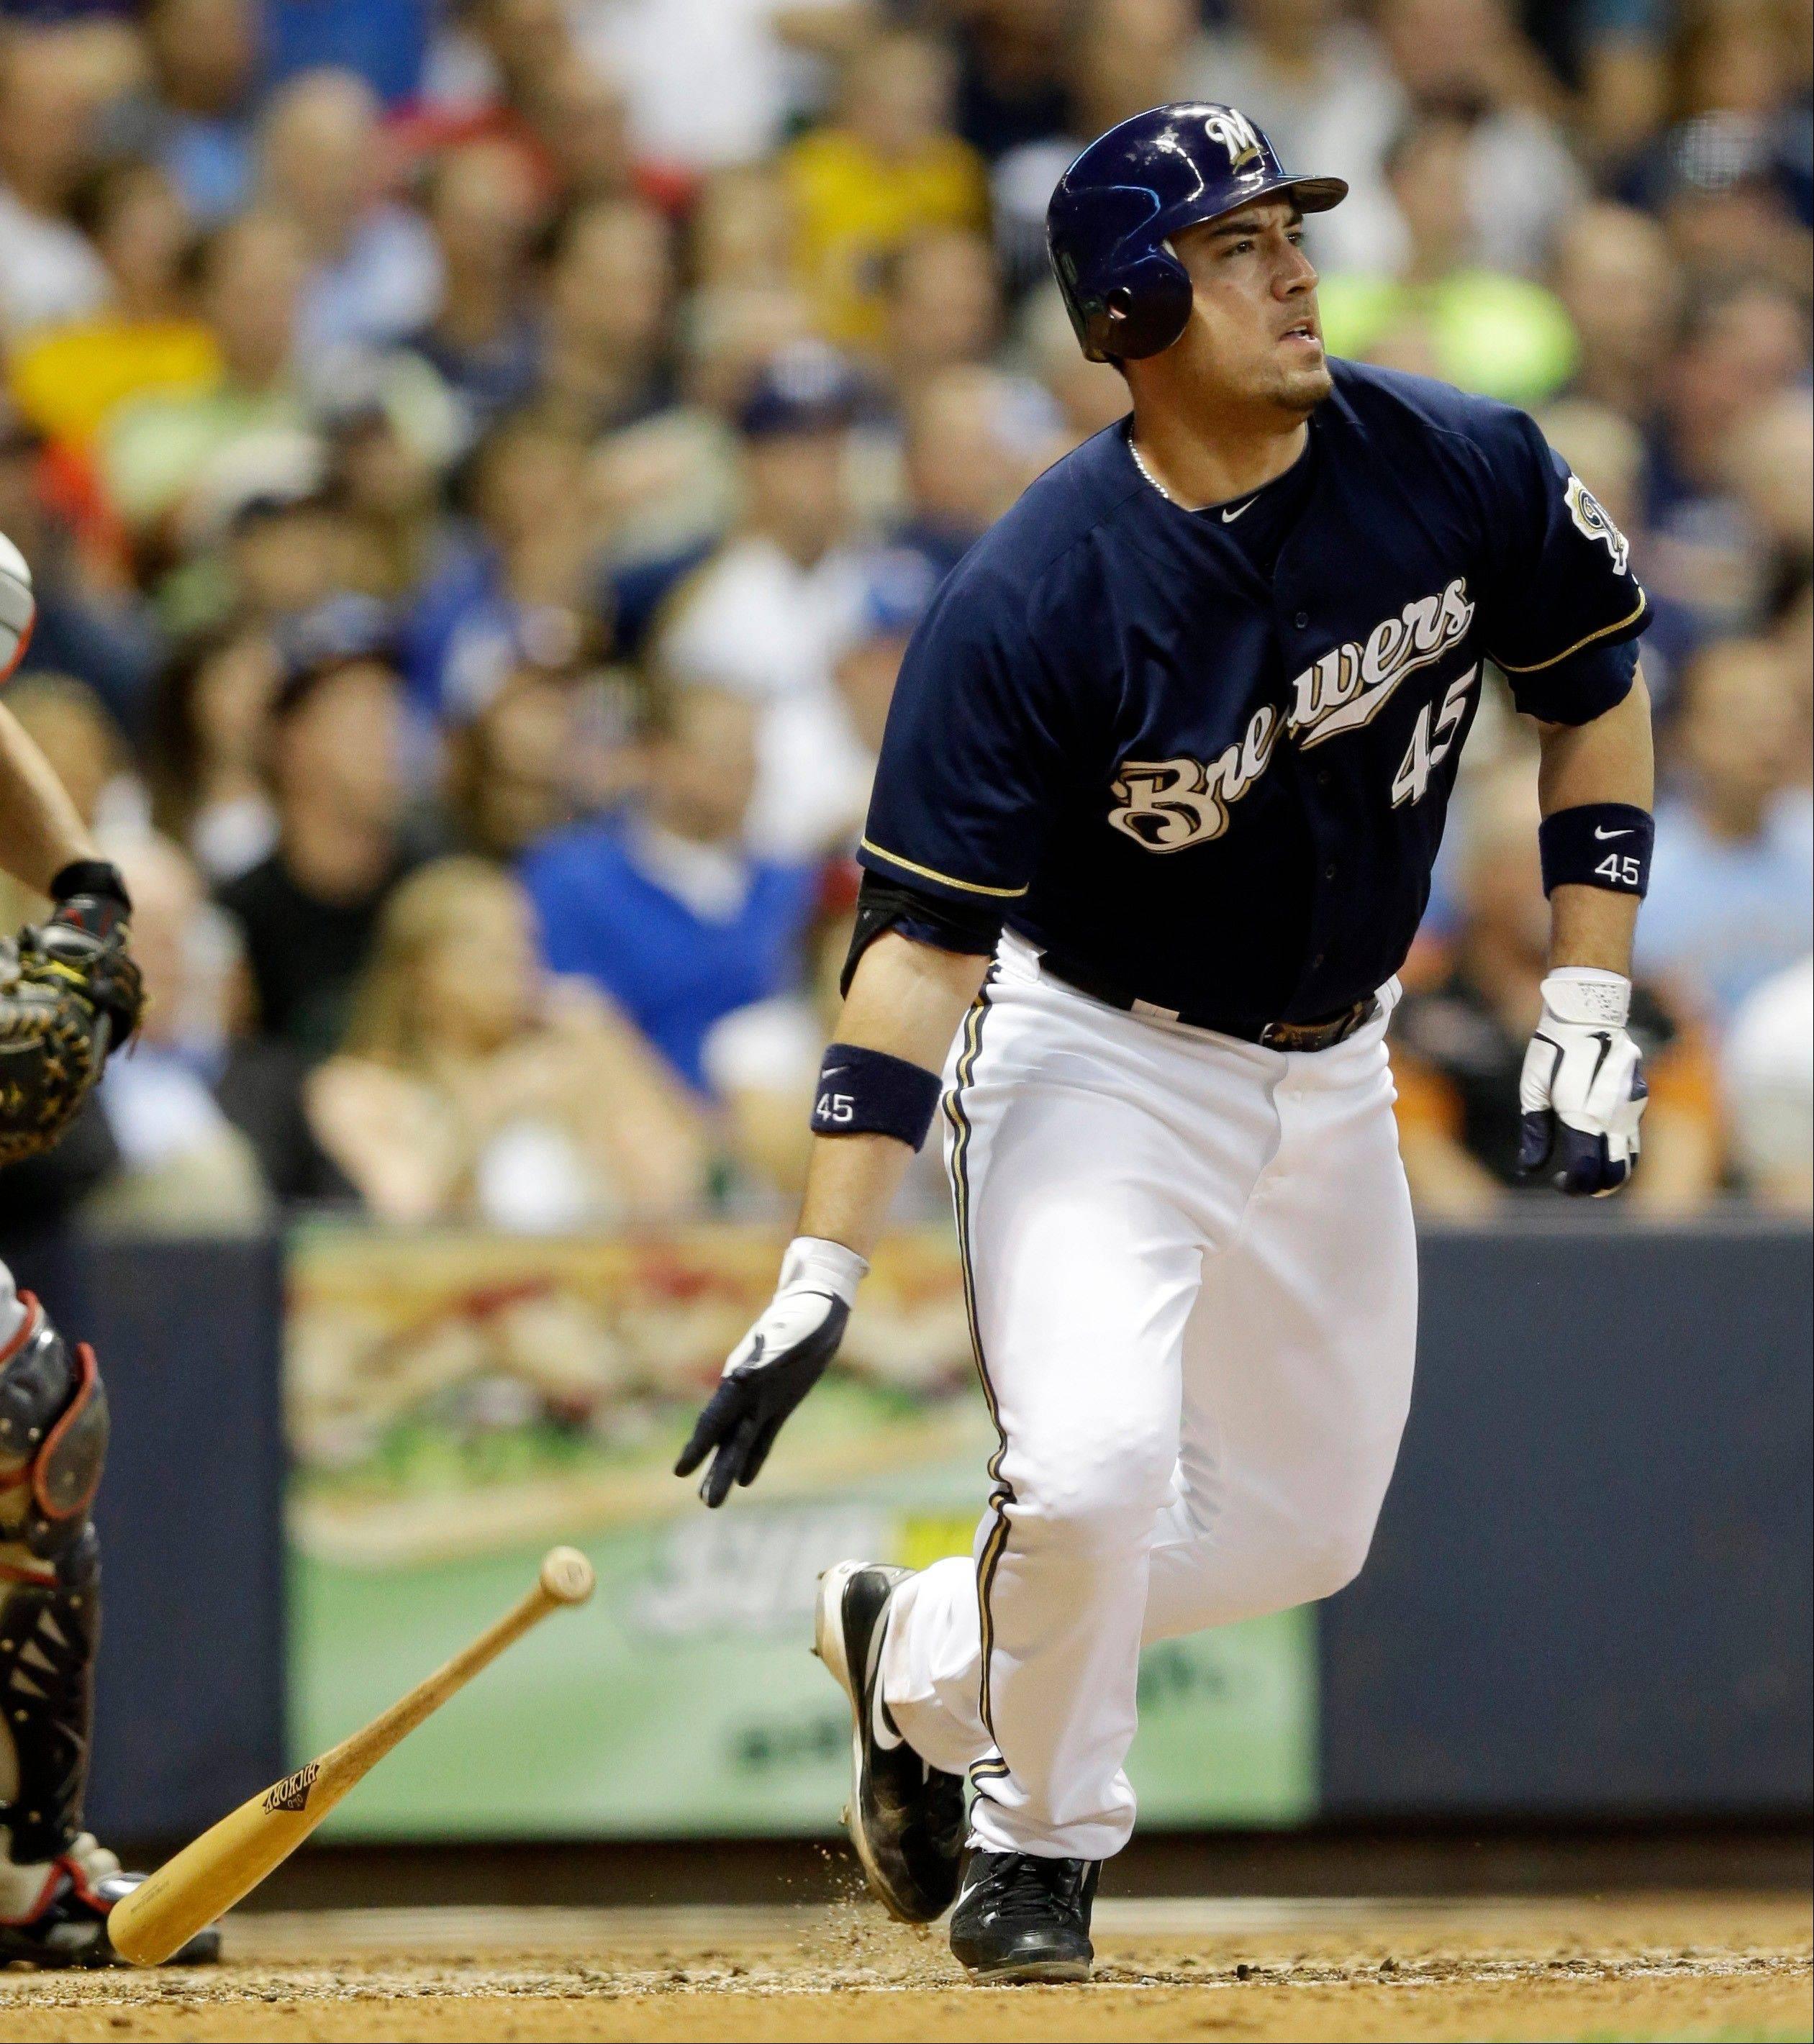 The Brewers' Travis Ishikawa hits a three-run double during the fifth inning against Atlanta on Wednesday in Milwaukee.